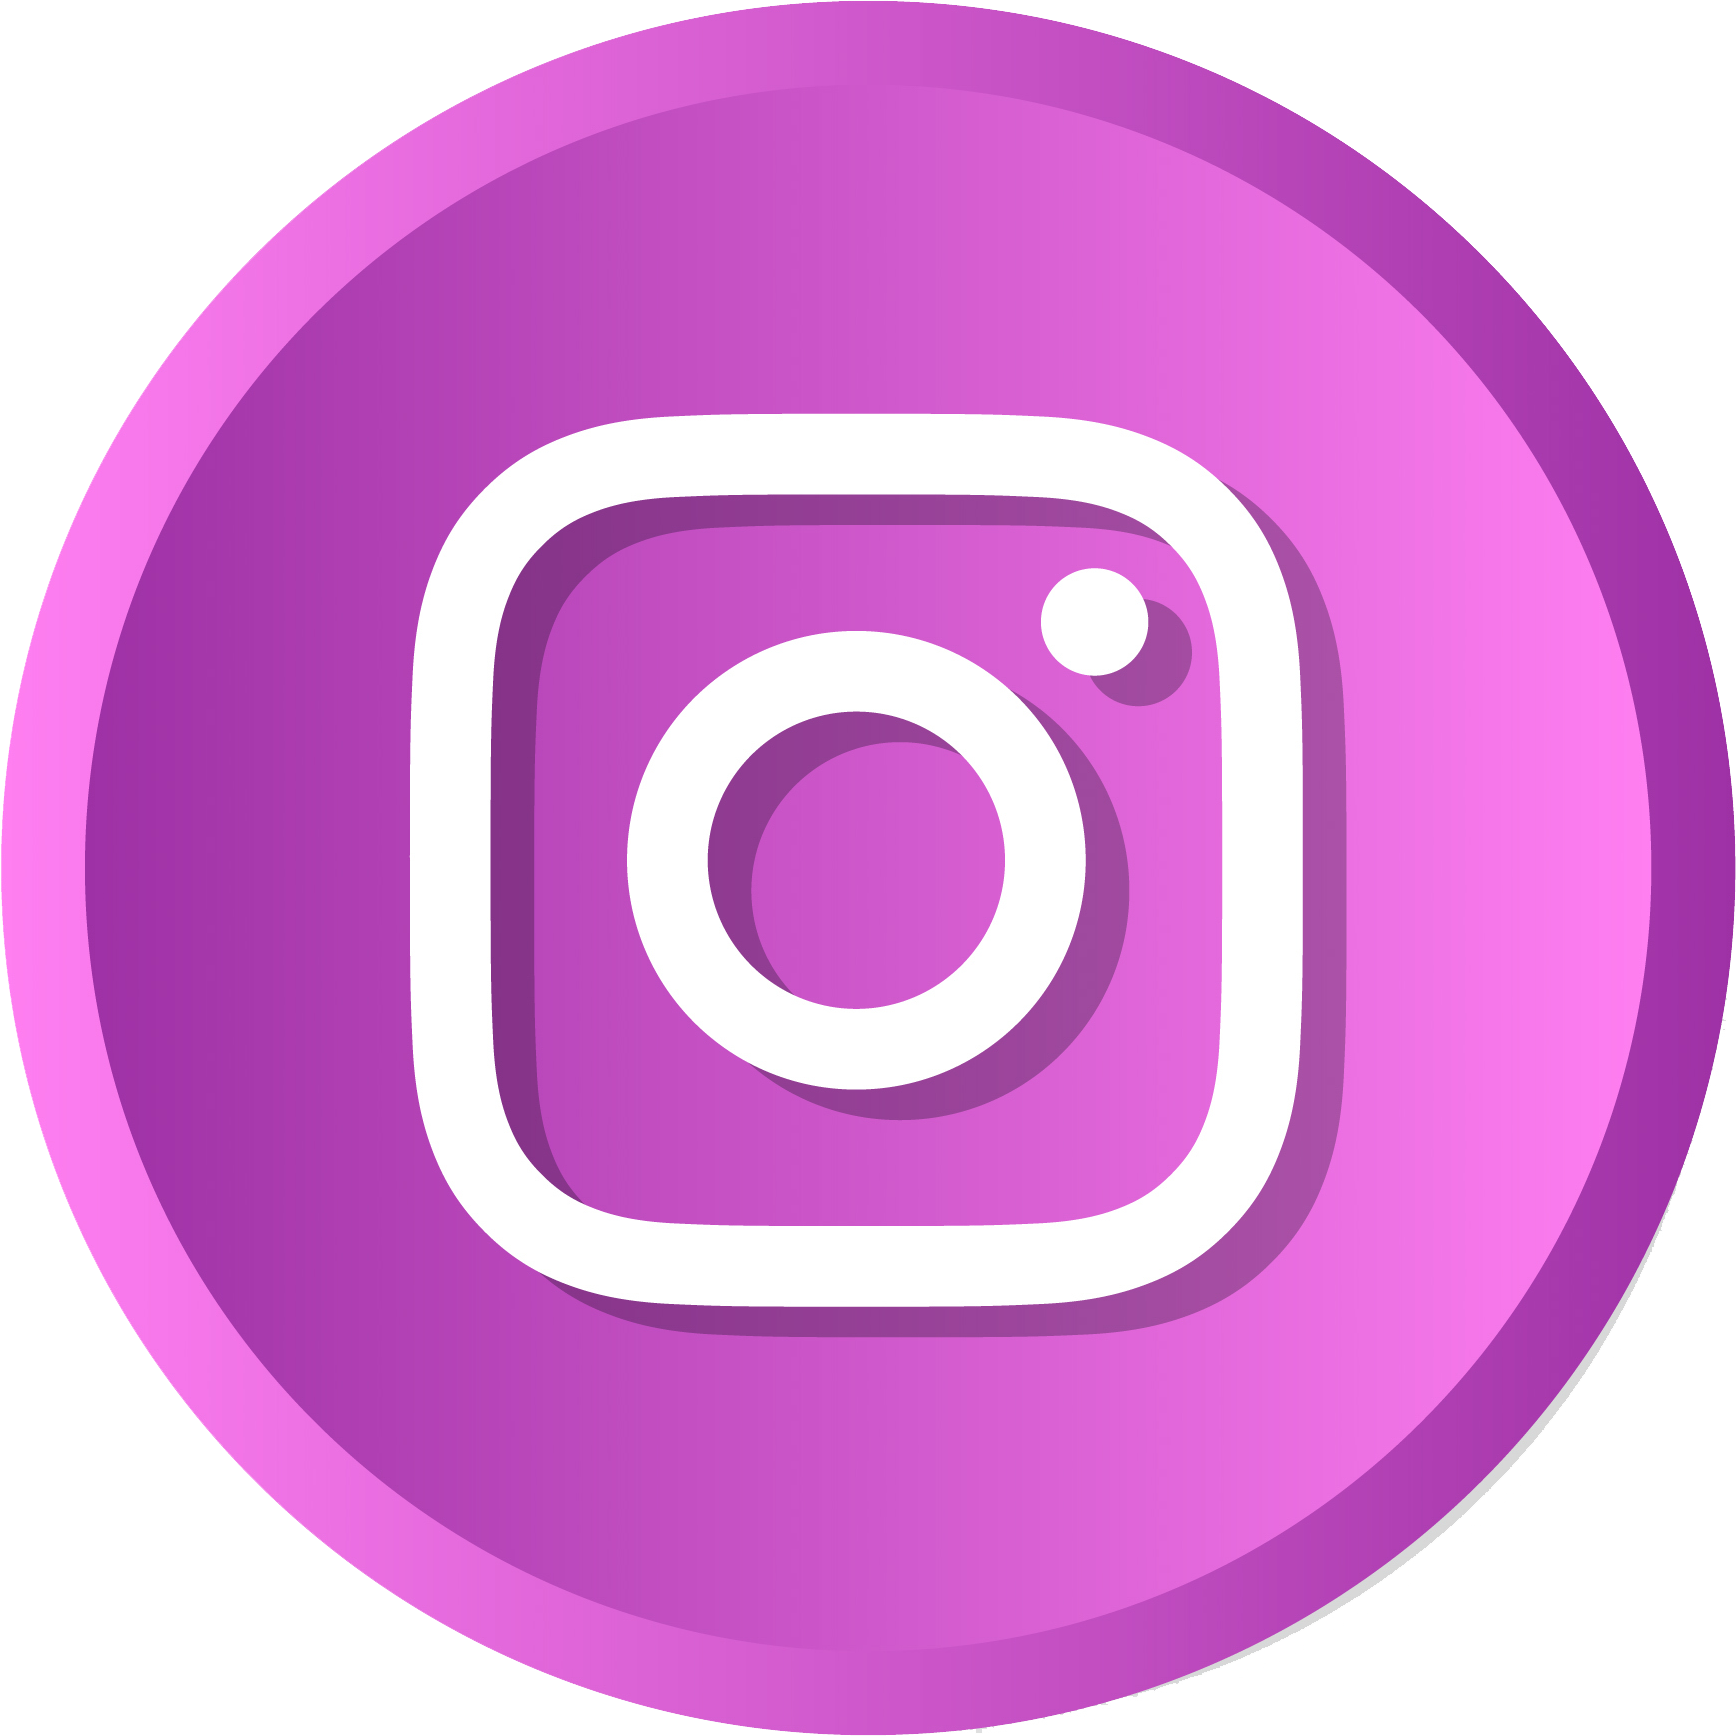 Instagram Logo by Lia Aramburu